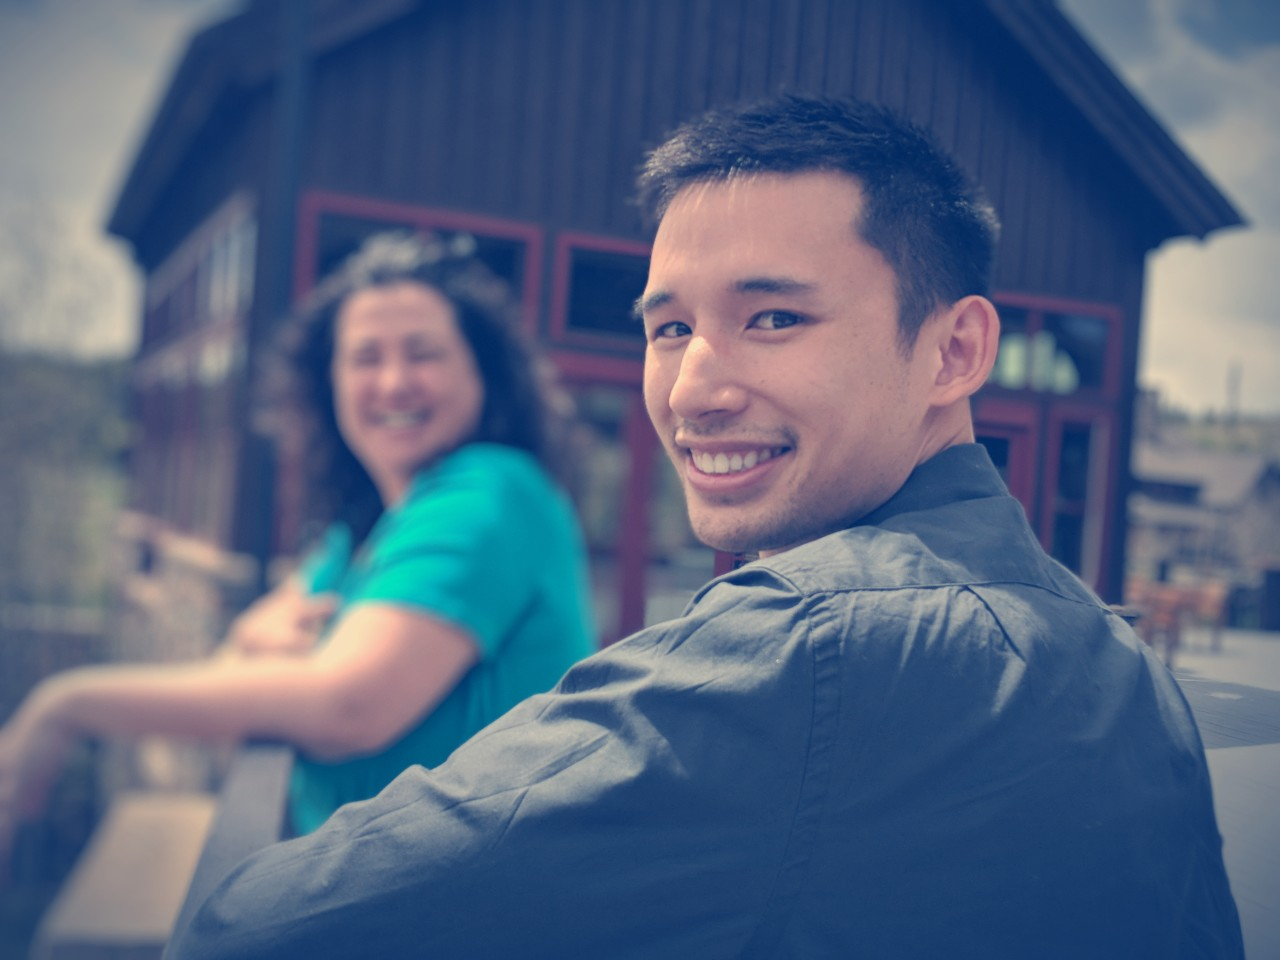 Photo: Exponent Partners Customer Success Manager Damaris and Services Engineer Michael Smiling at You